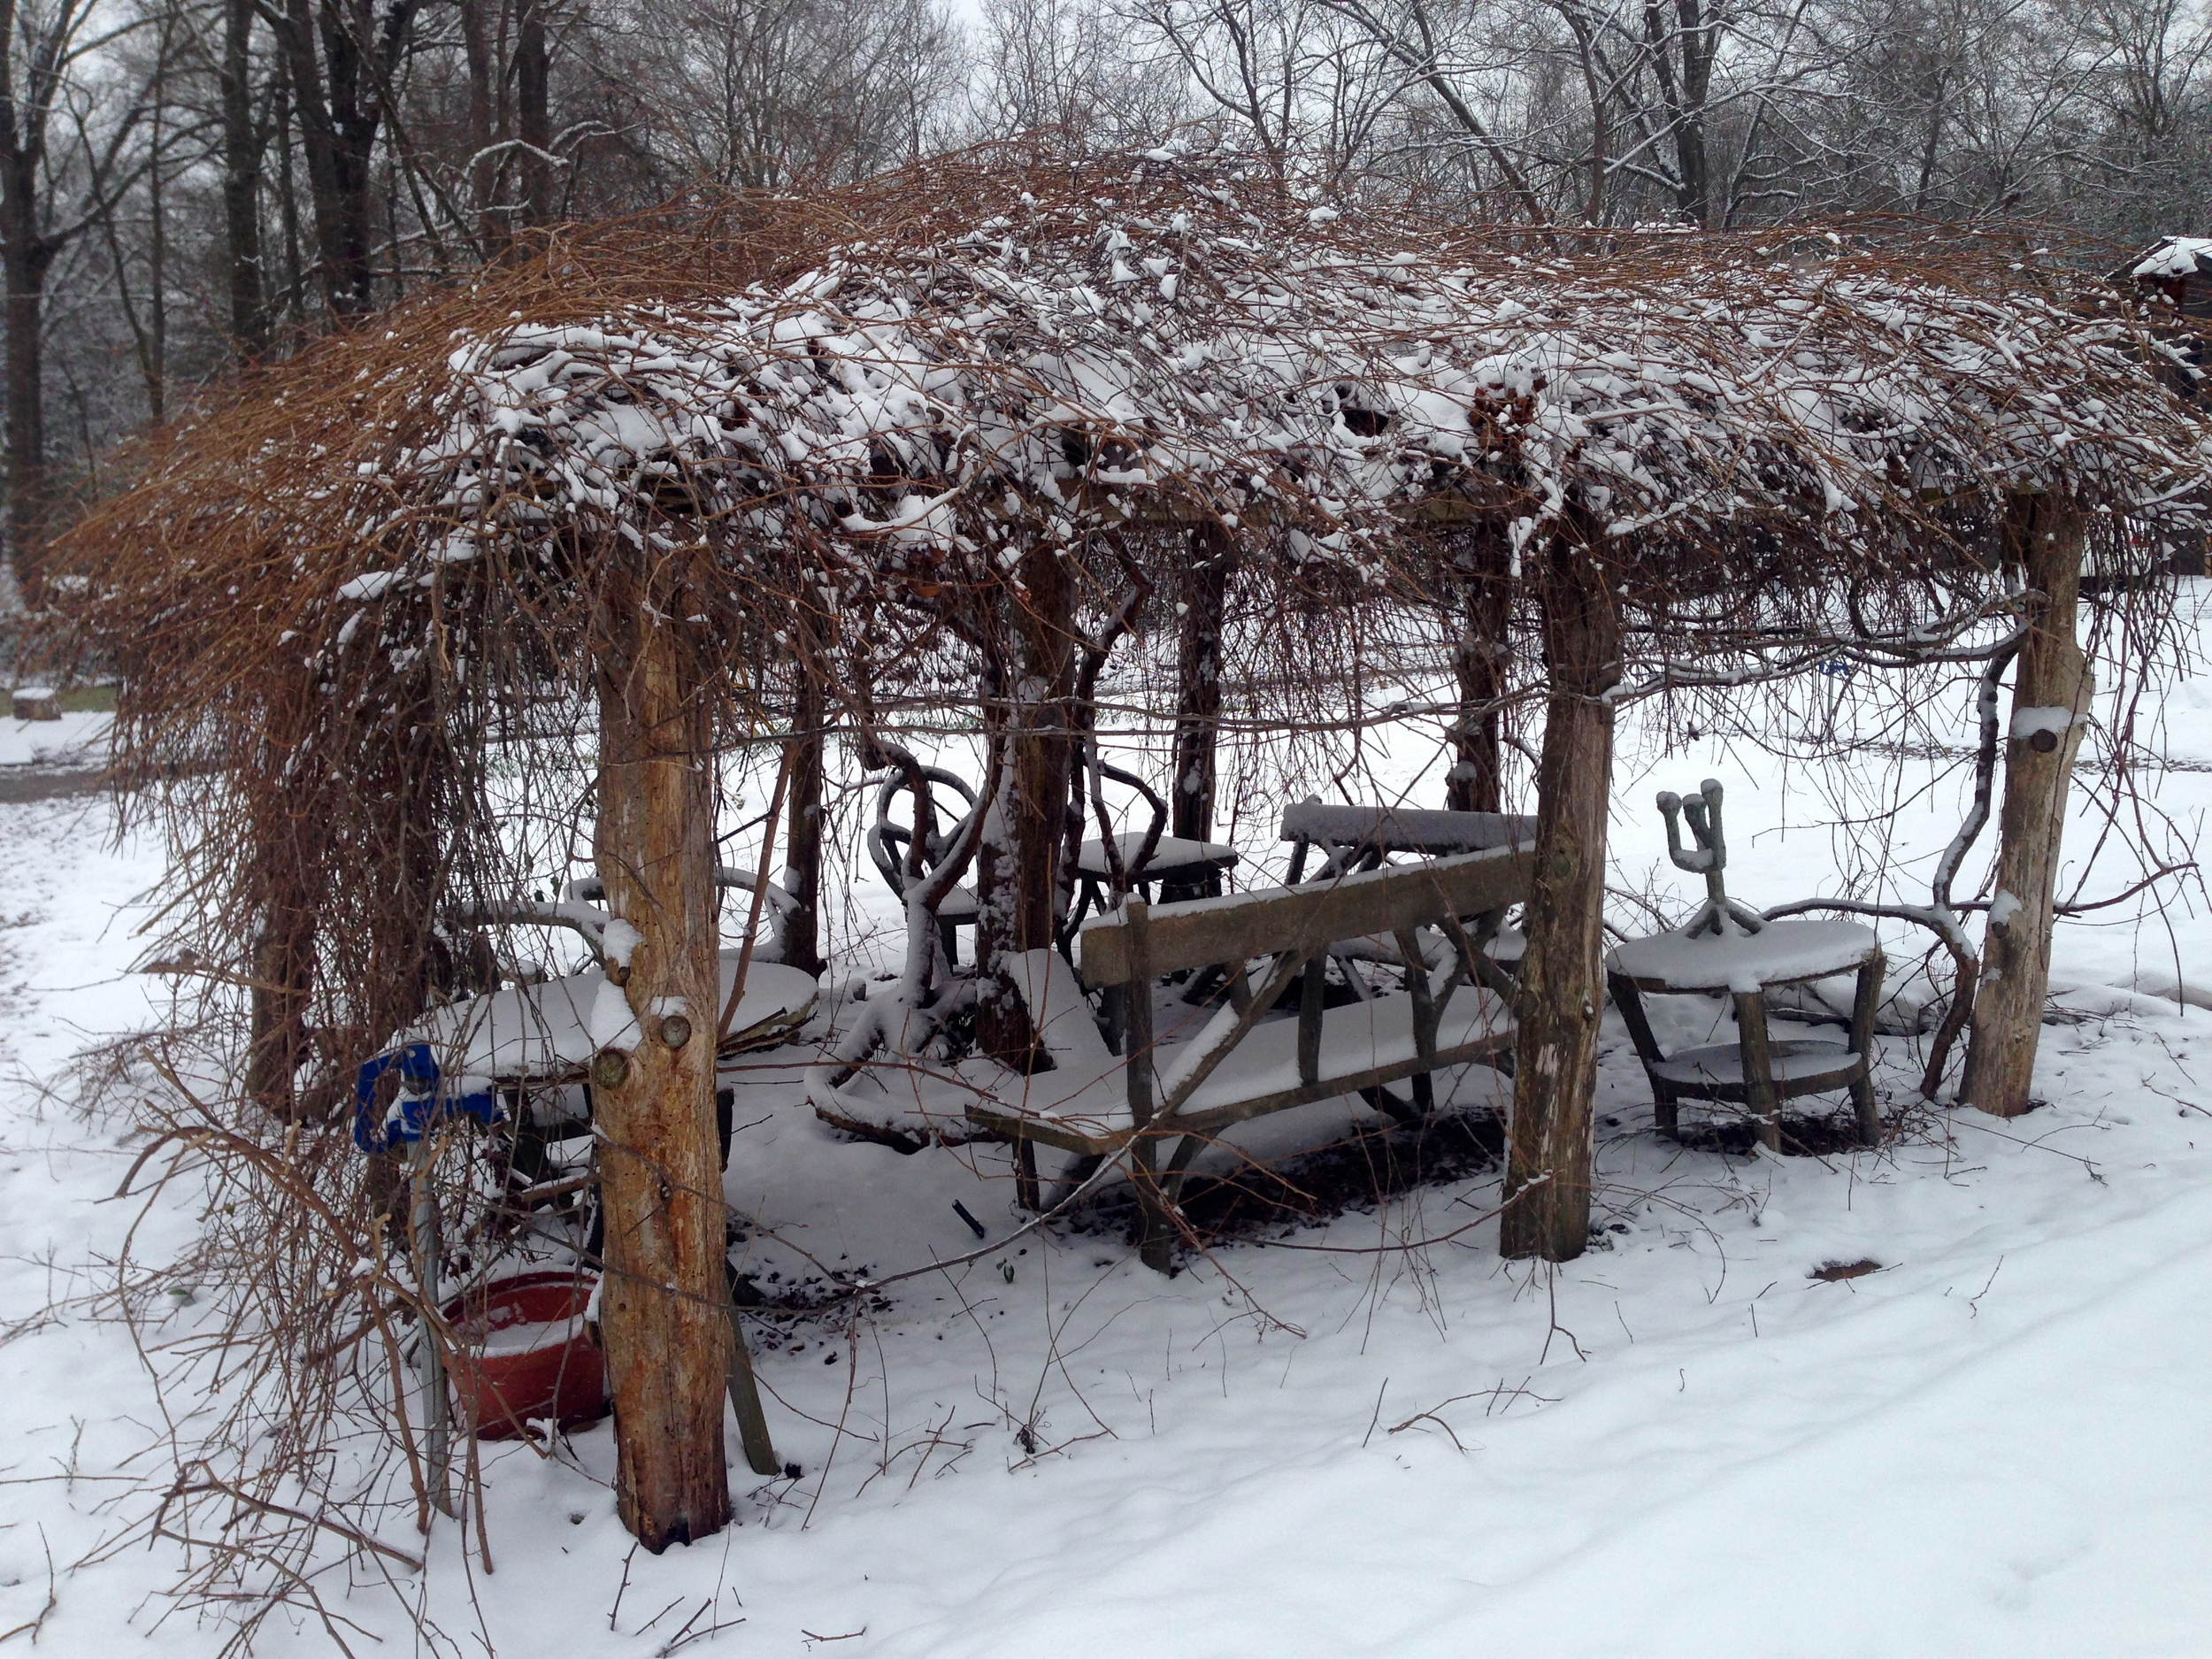 """We laugh and call this our """"summer office"""" as it provides a nice shady spot to rest for a minute when the muscadine vines are fully leafed. Not so cozy on a snow day though."""